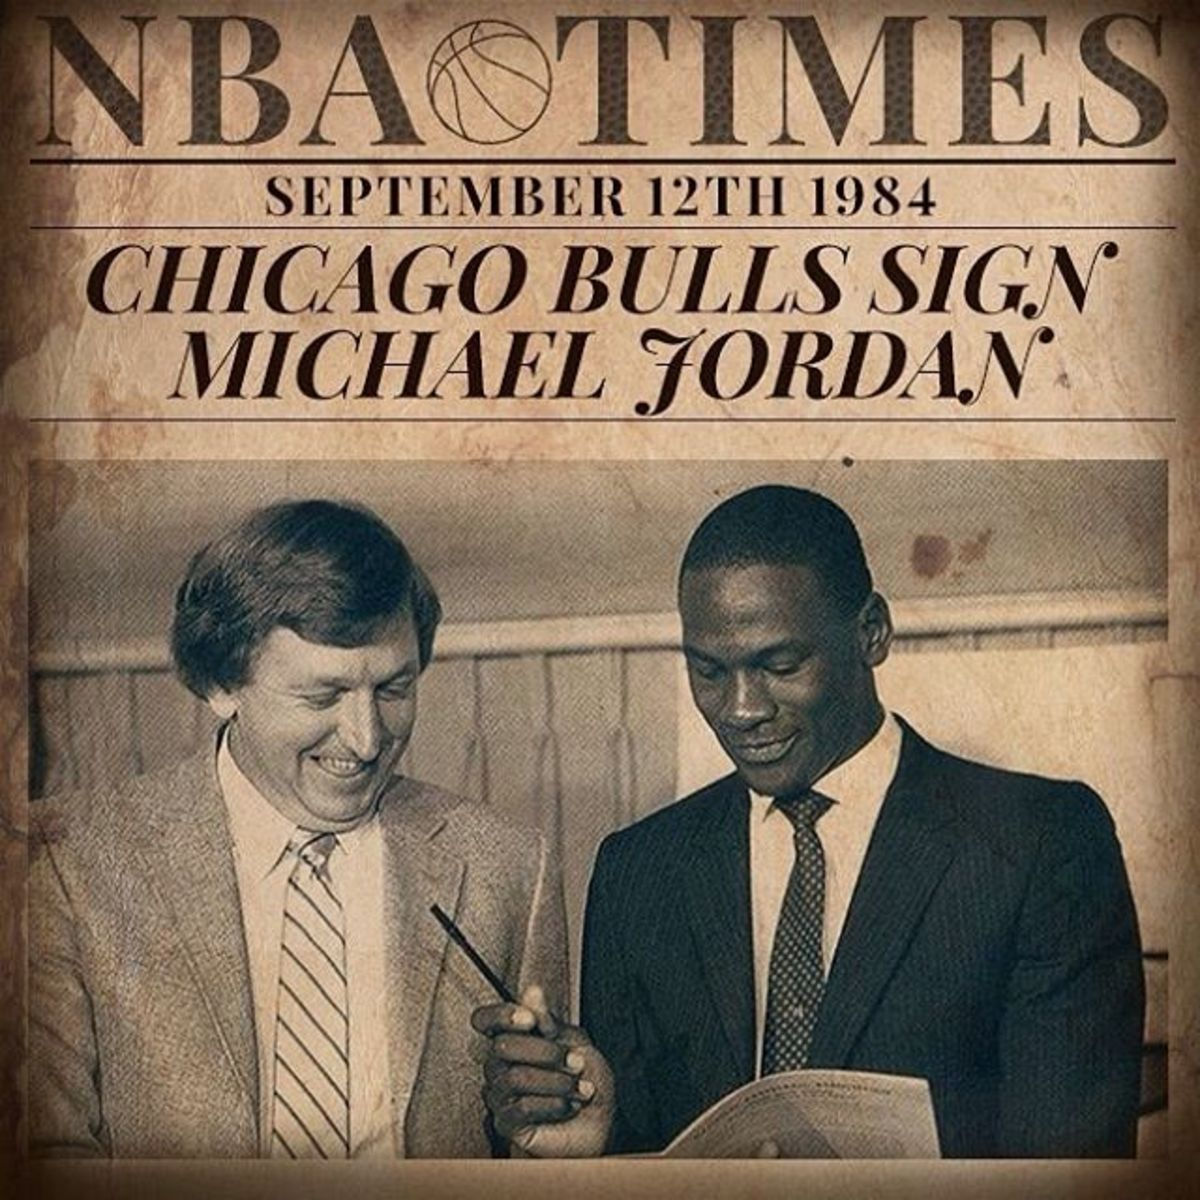 Michael Jordan Signed With Chicago Bulls